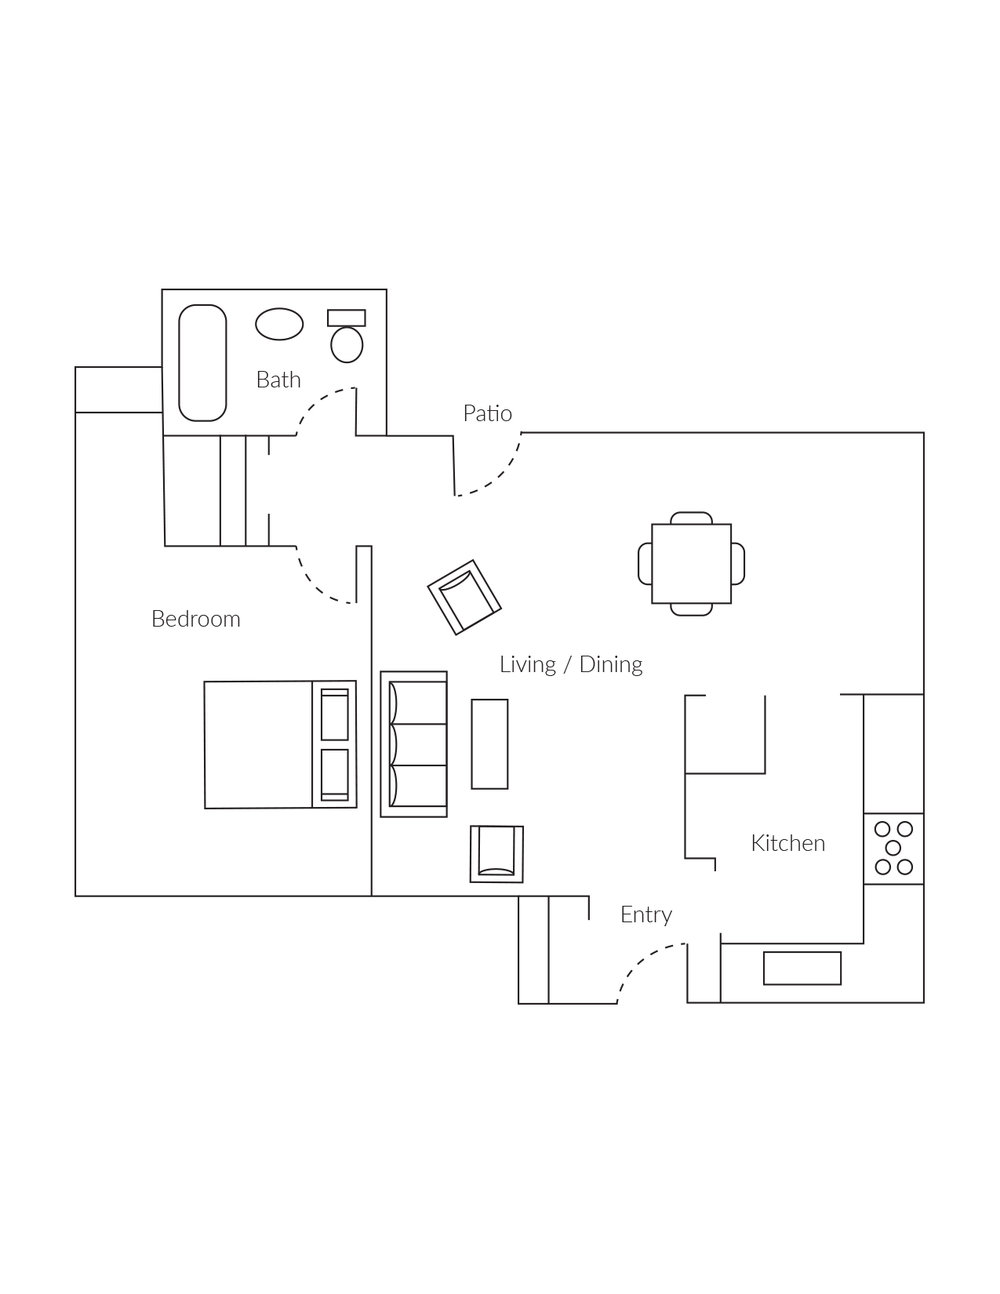 1 bedroom, 1 bathroom townhome